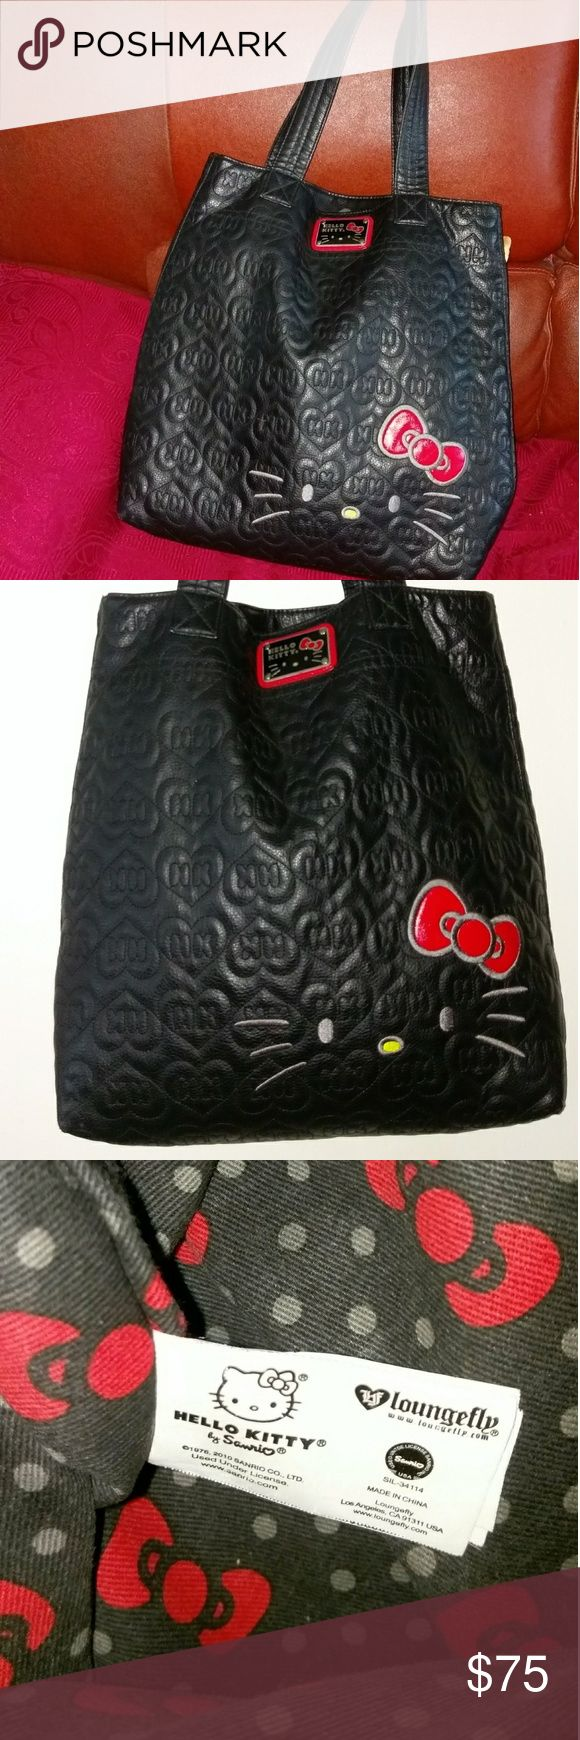 """Hello Kitty lovers rejoice!!! black lattice bag Authentic Hello Kitty Loungefly Excellent condition Black on black lattice monogram HK Approx 17X17 body North-South design Shoulder to bottom approx  27""""L Fully lined Prominent logo in front. HK will not be denied:) As shown in photos  Note:*****inside zipper broken. No zipper pull. Hence, the price. Hello Kitty Bags Shoulder Bags"""